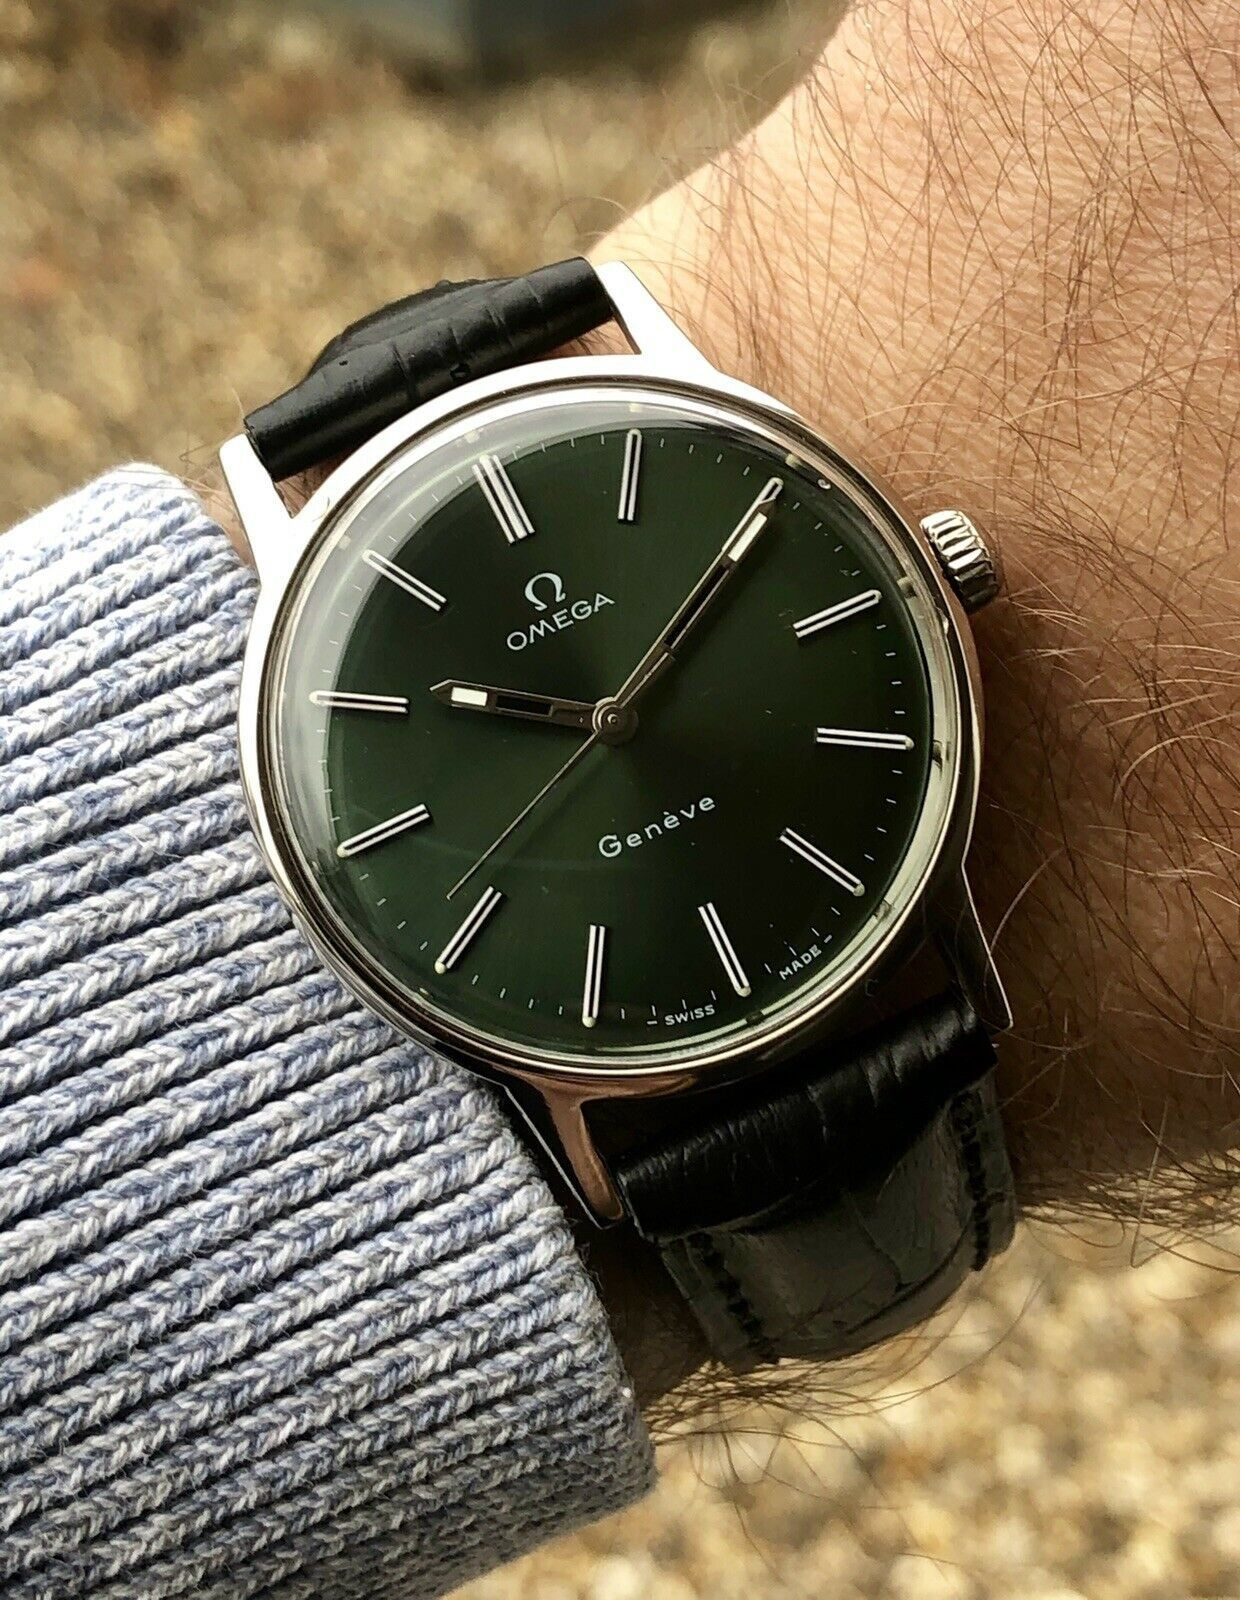 Https Www Fineauctionclub Com Listing 681242471 Omega Mens 1960 To 1969 Geneve Green